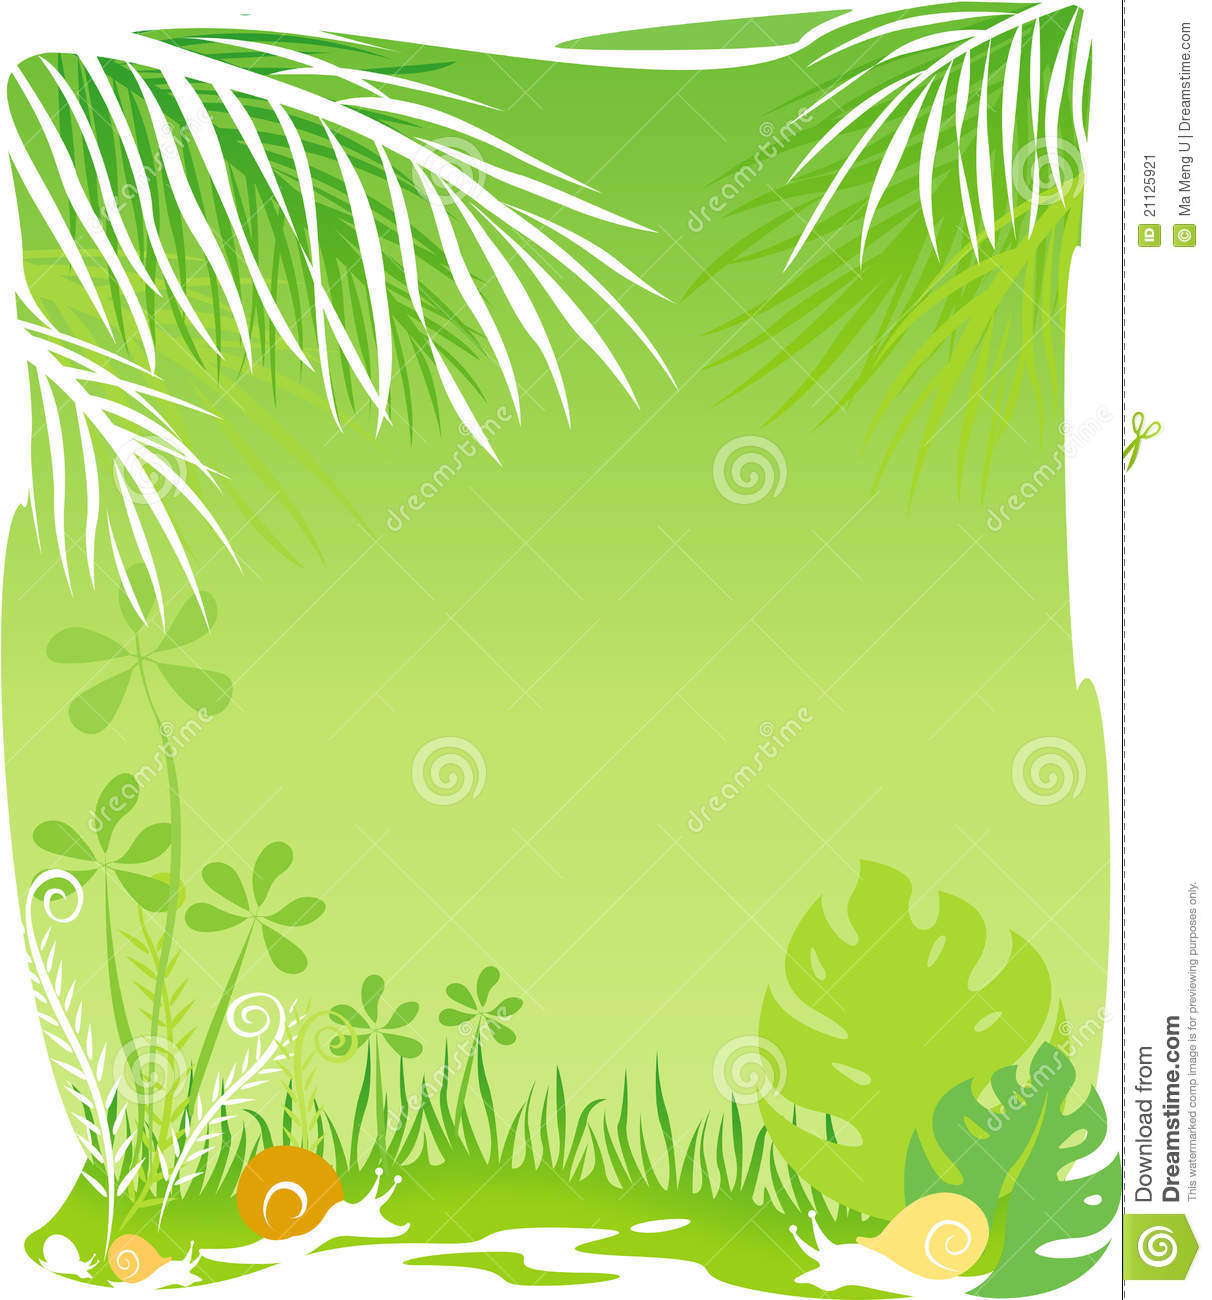 Green rainforest background with copy space on the center.